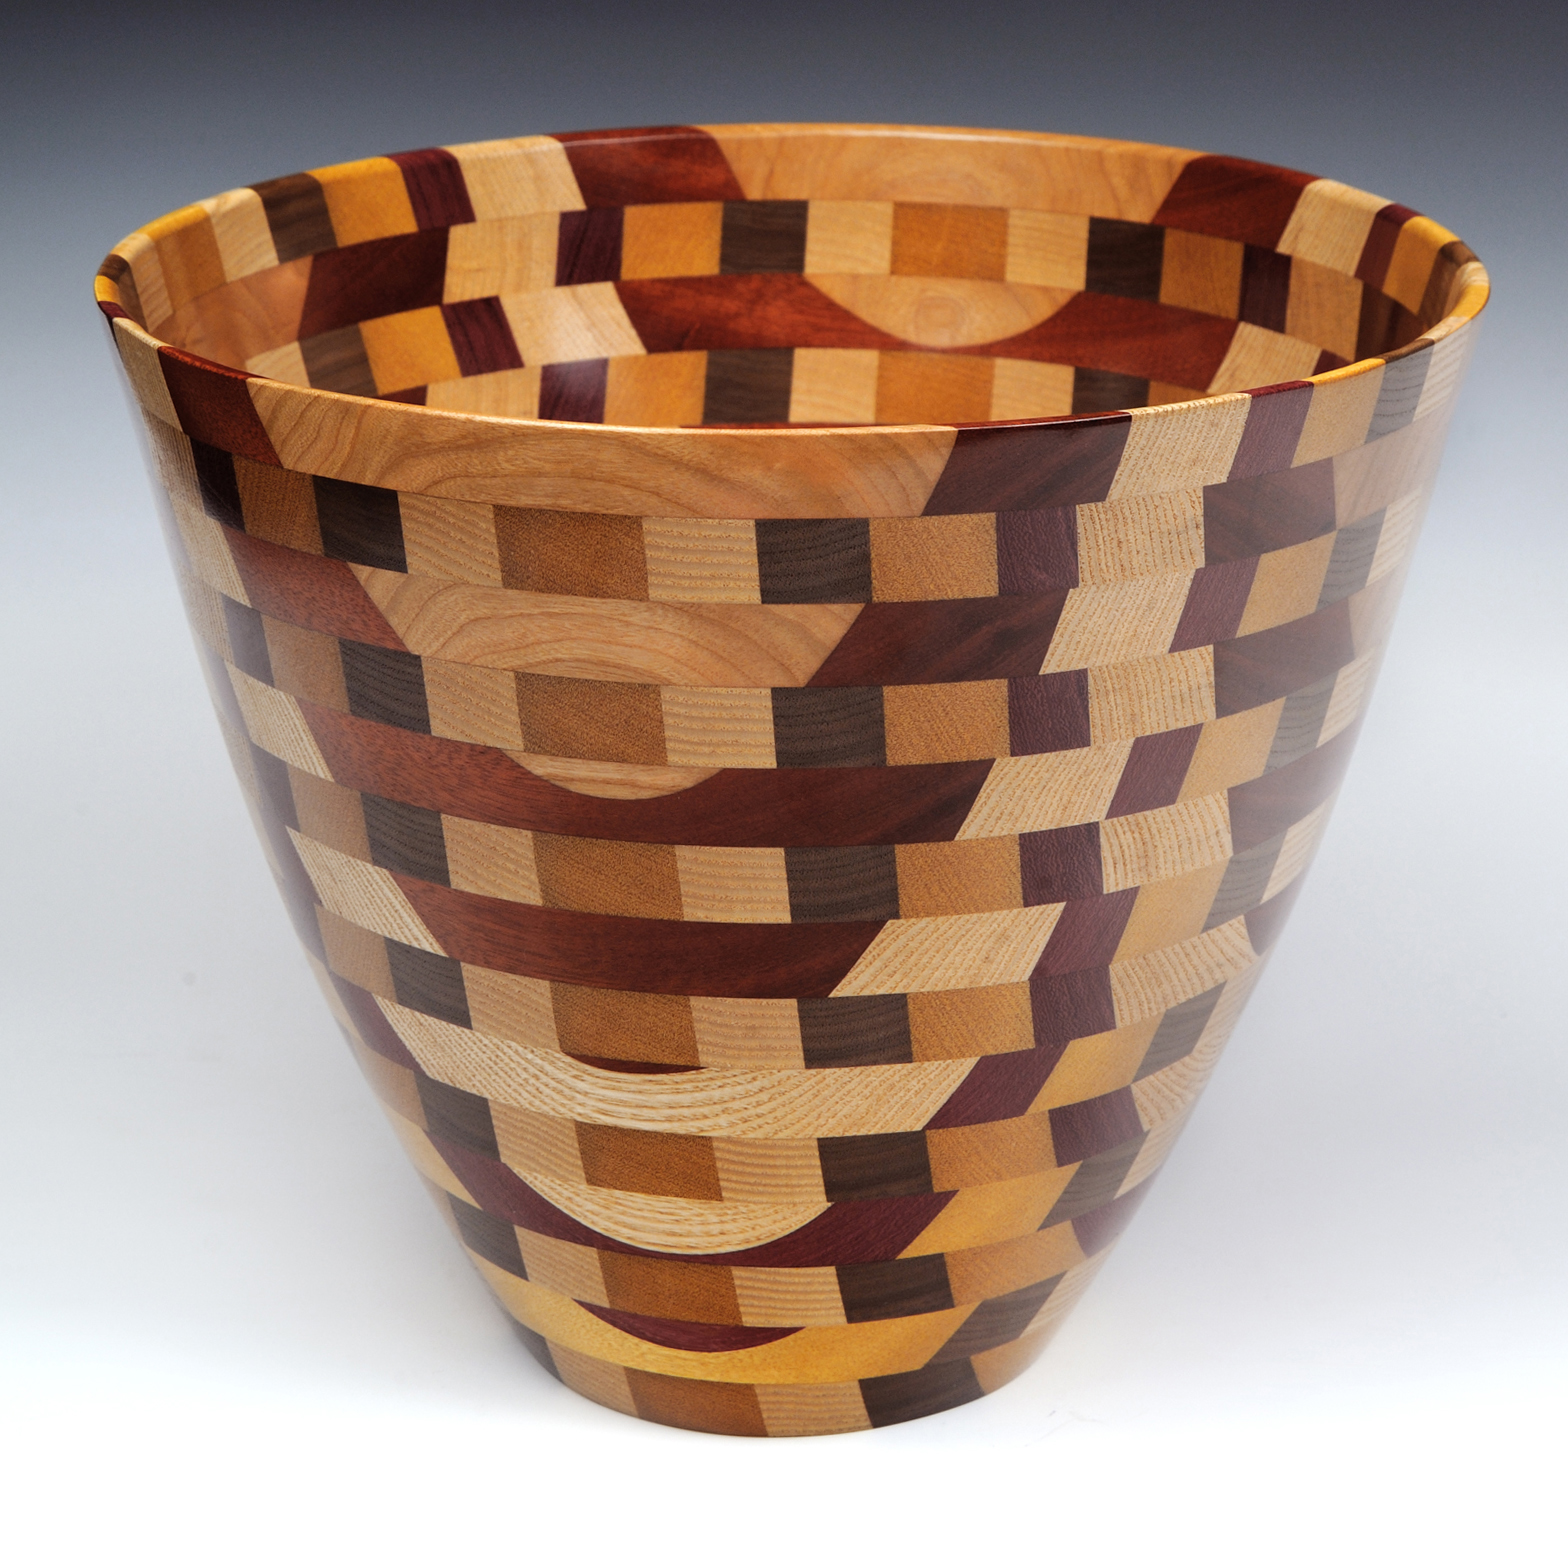 Mixed Woods Vessel No, 1